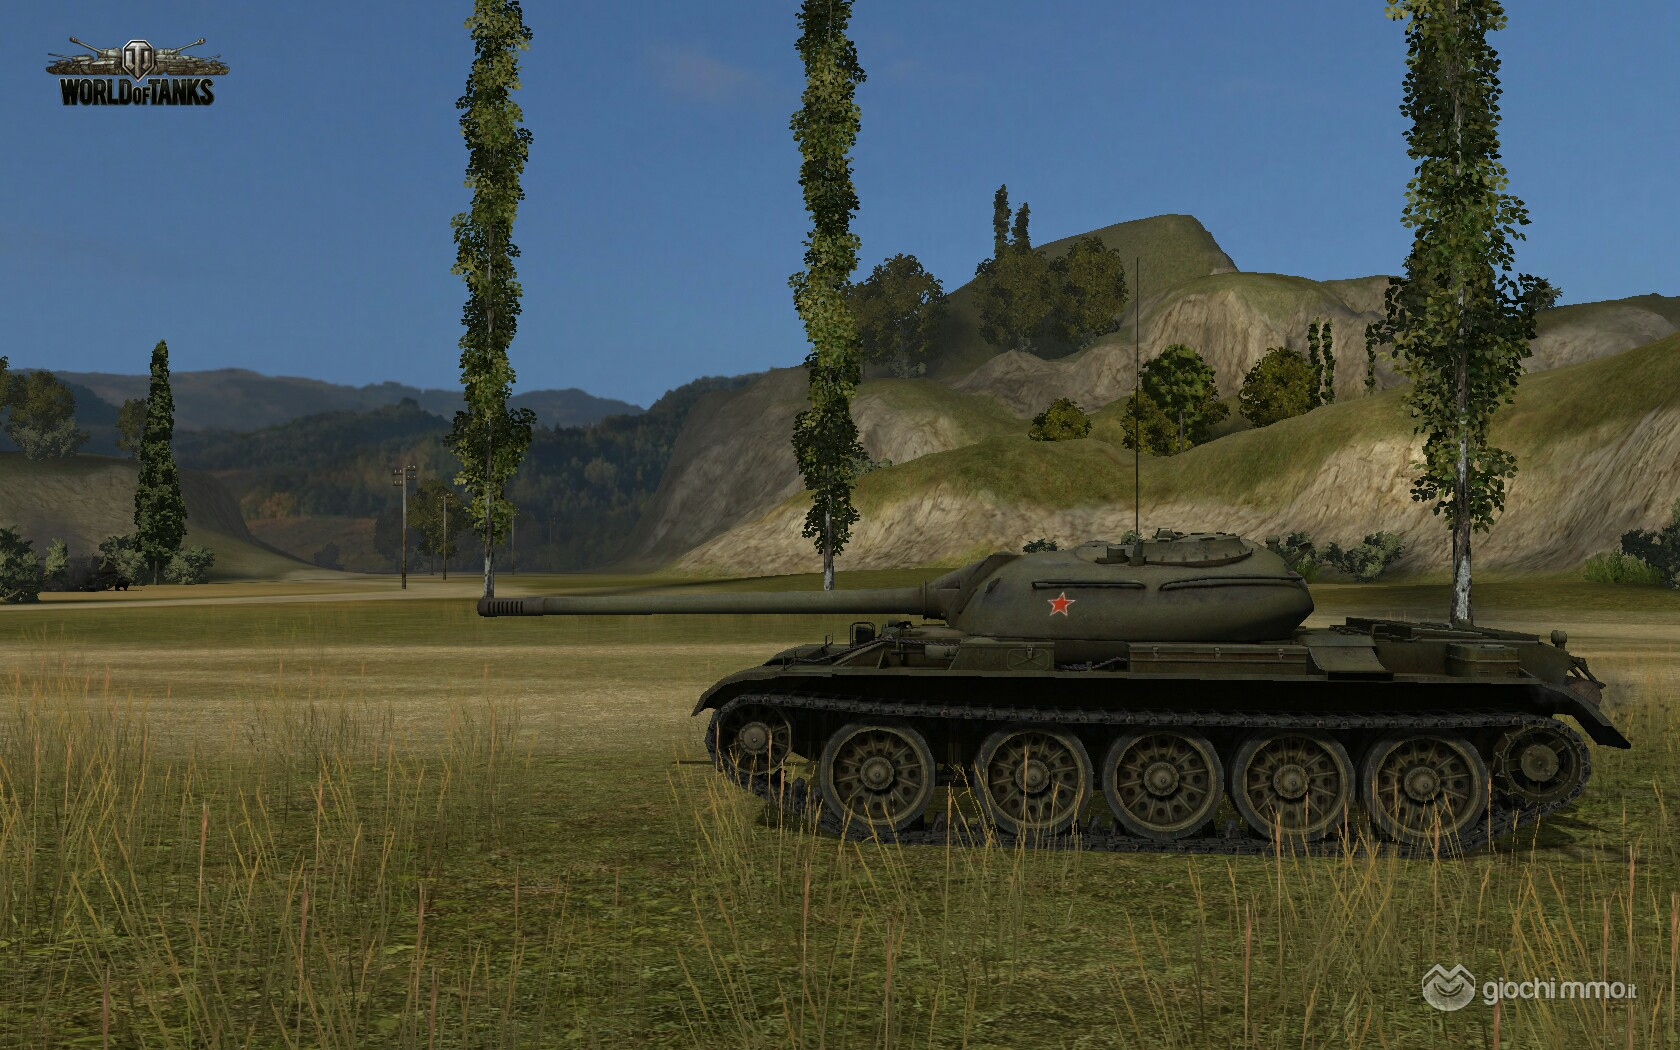 Clicca sull'immagine per ingrandirlaNome:   World of Tanks screen5.jpgVisite: 93Dimensione:   457.0 KBID: 8206